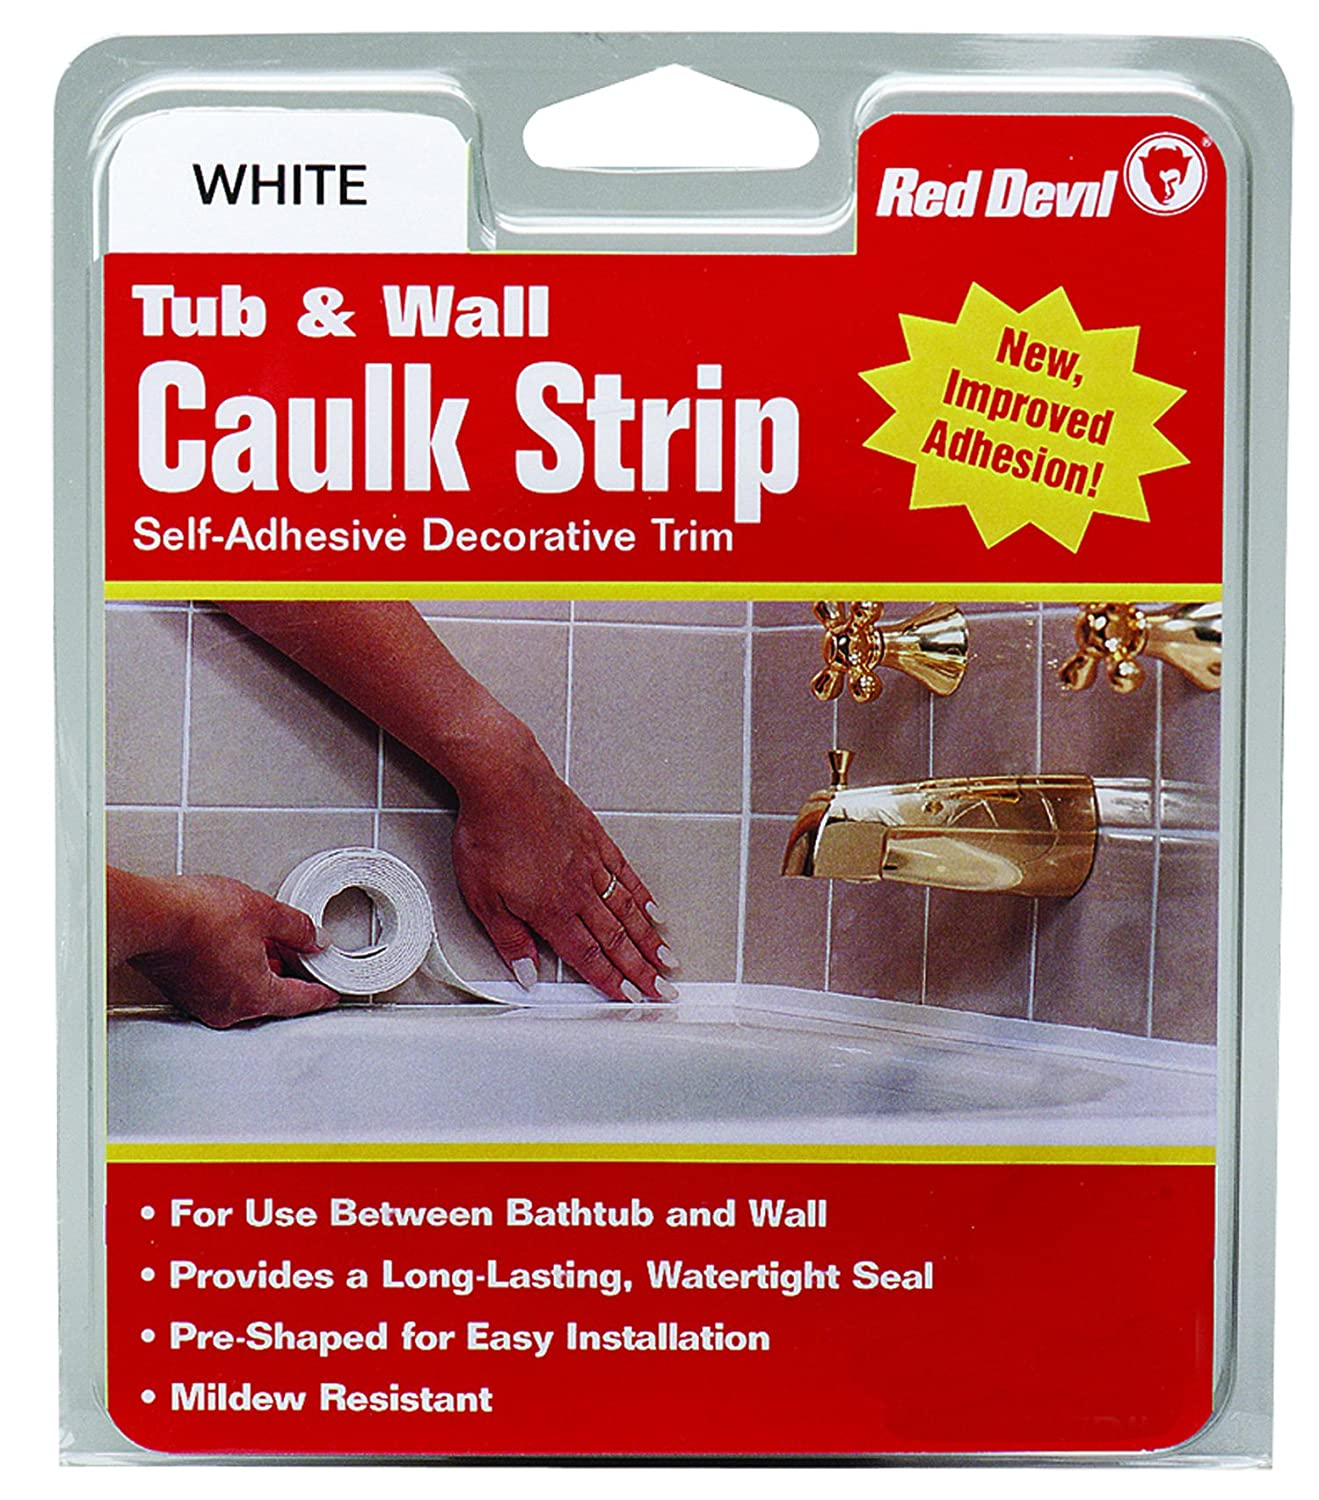 Best Caulk For Trim Amazoncom Red Devil 0151 Wide White Tub Wall Caulk Strip 1 5 8